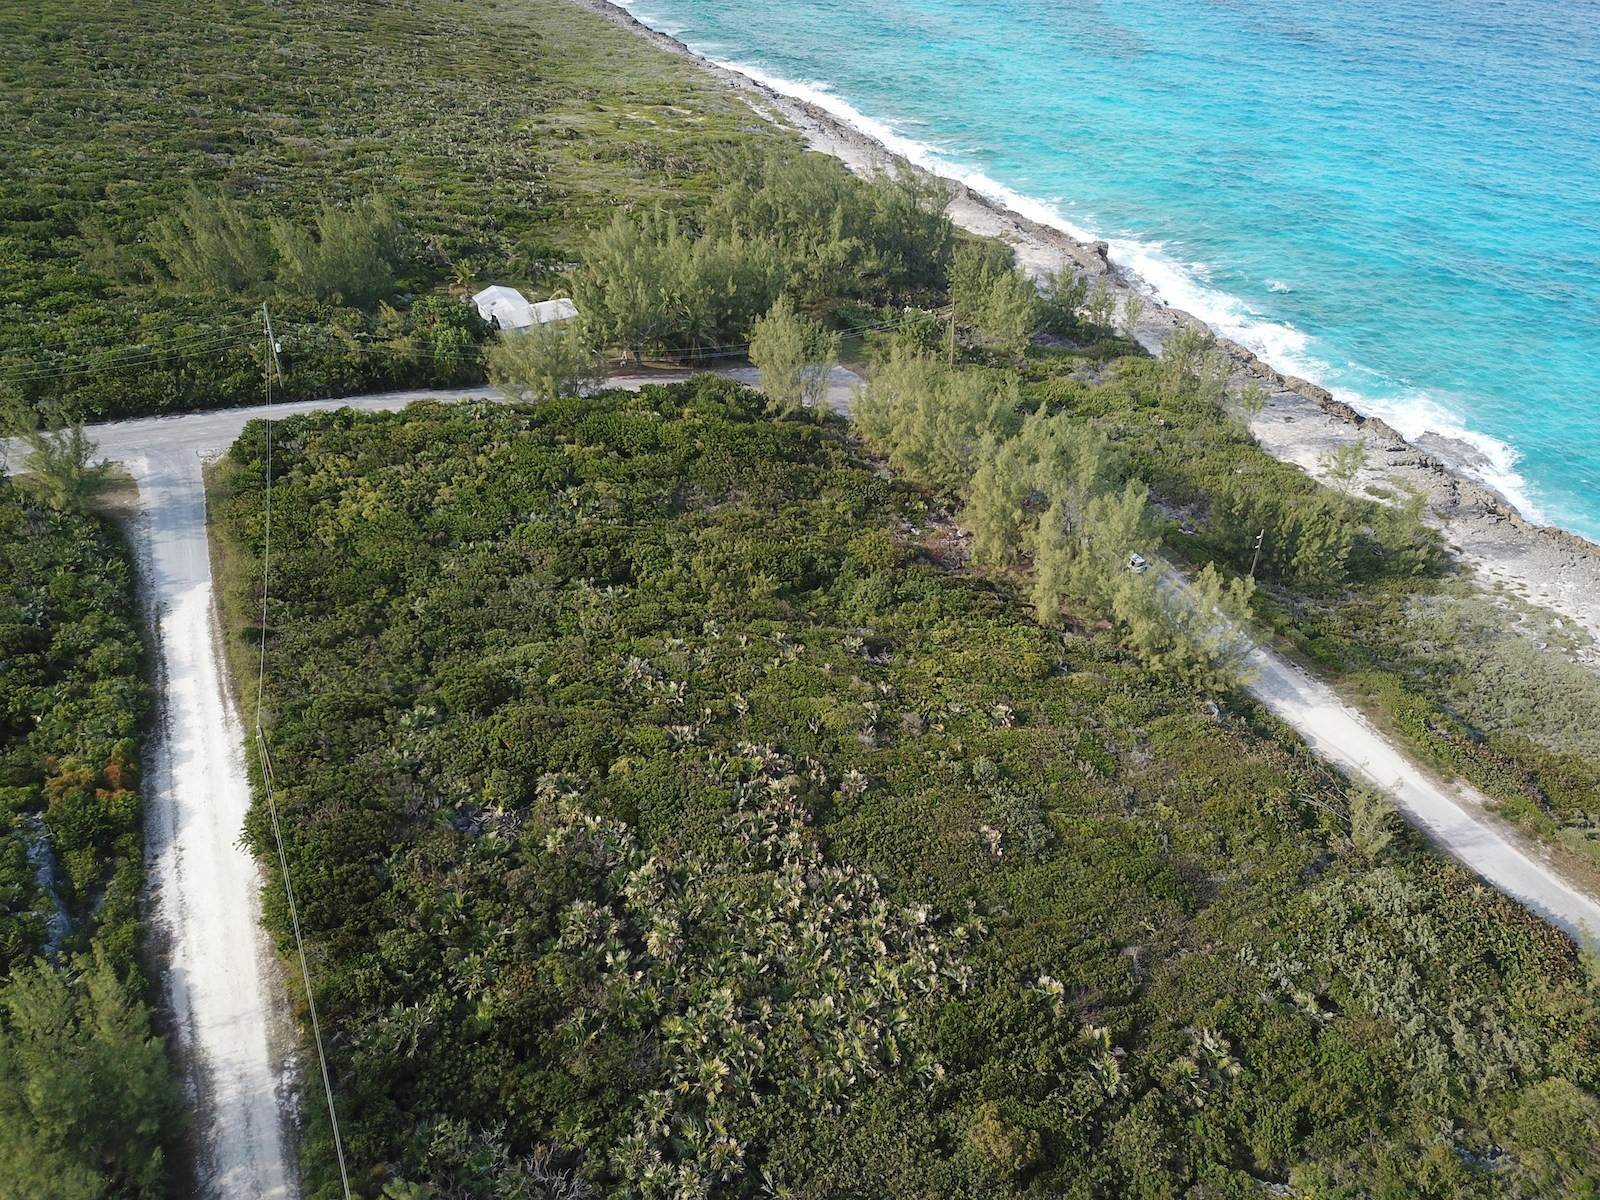 Land for Sale at Great Rainbow Bay Lot, Section A, Block 6, Lot 1 - MLS 39762 Rainbow Bay, Eleuthera, Bahamas